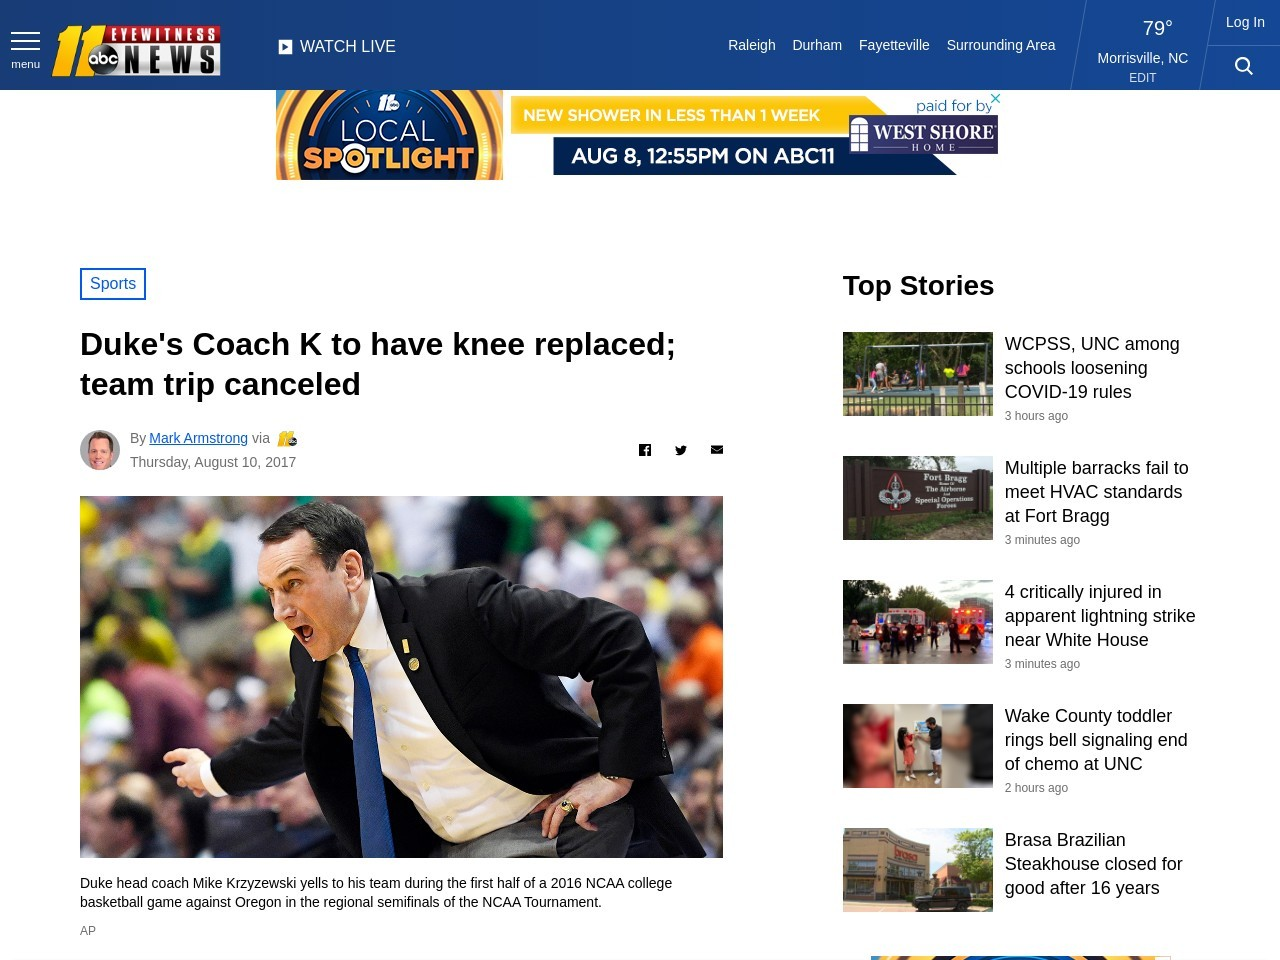 Duke's Coach K to have knee replaced; team trip canceled